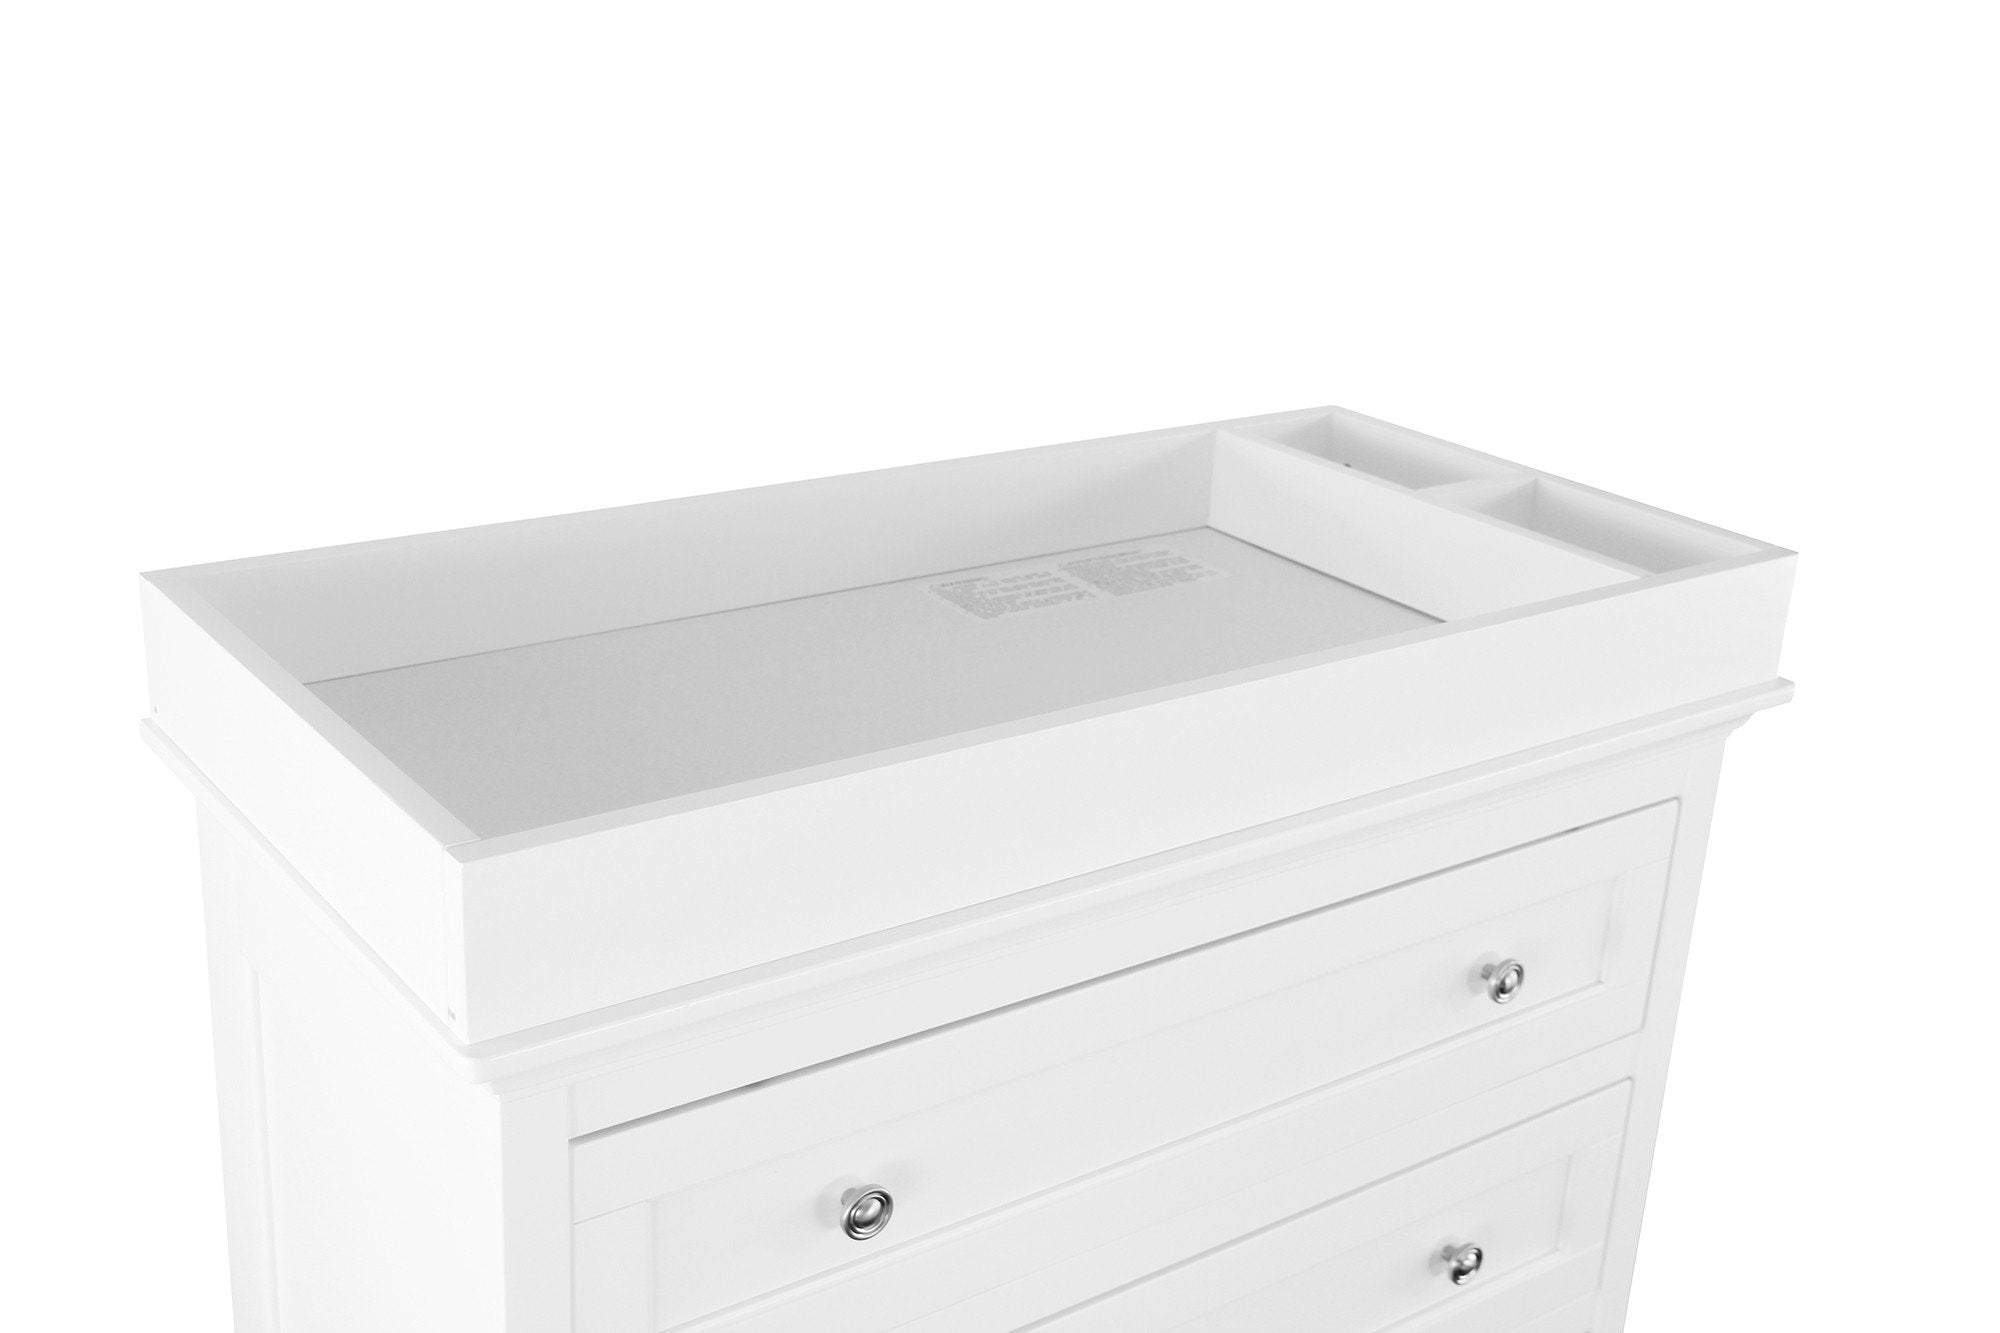 Perse 3-Drawer Changer with Removable Changing Tray - Project Nursery